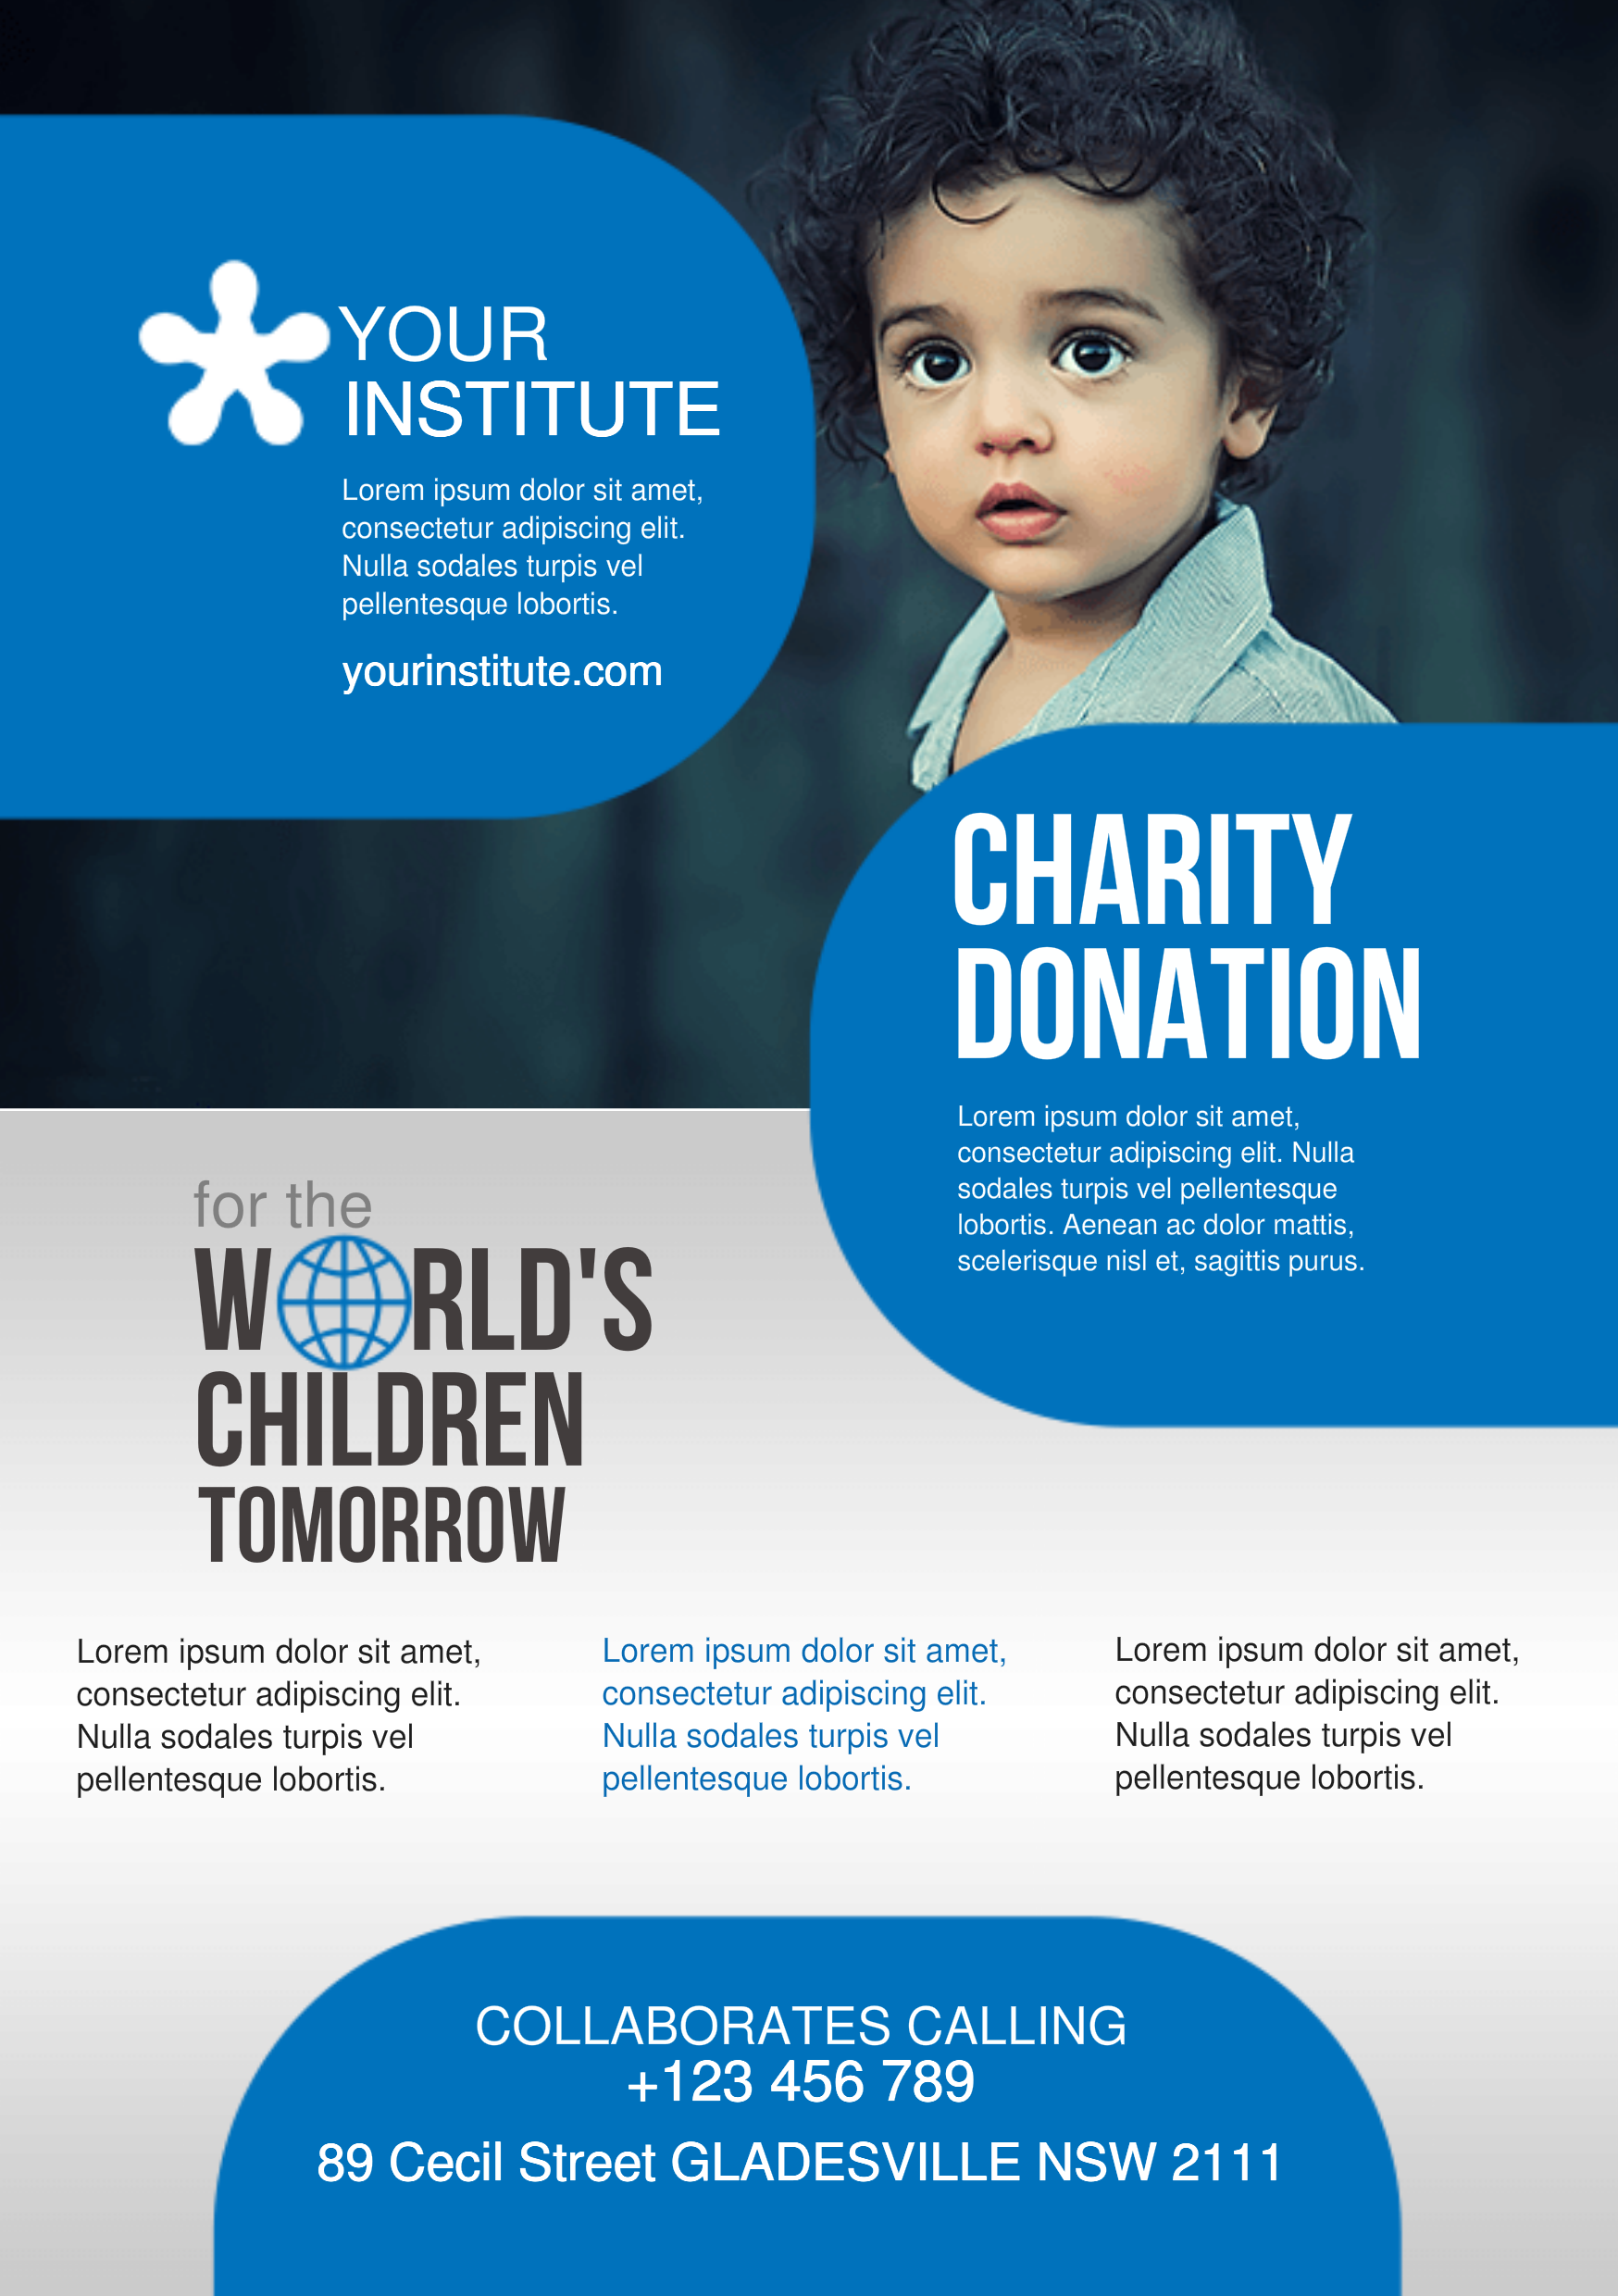 charity a5 promotional flyer premadevideos com a5 flyer charity a5 promotional flyer premadevideos com a5 flyer